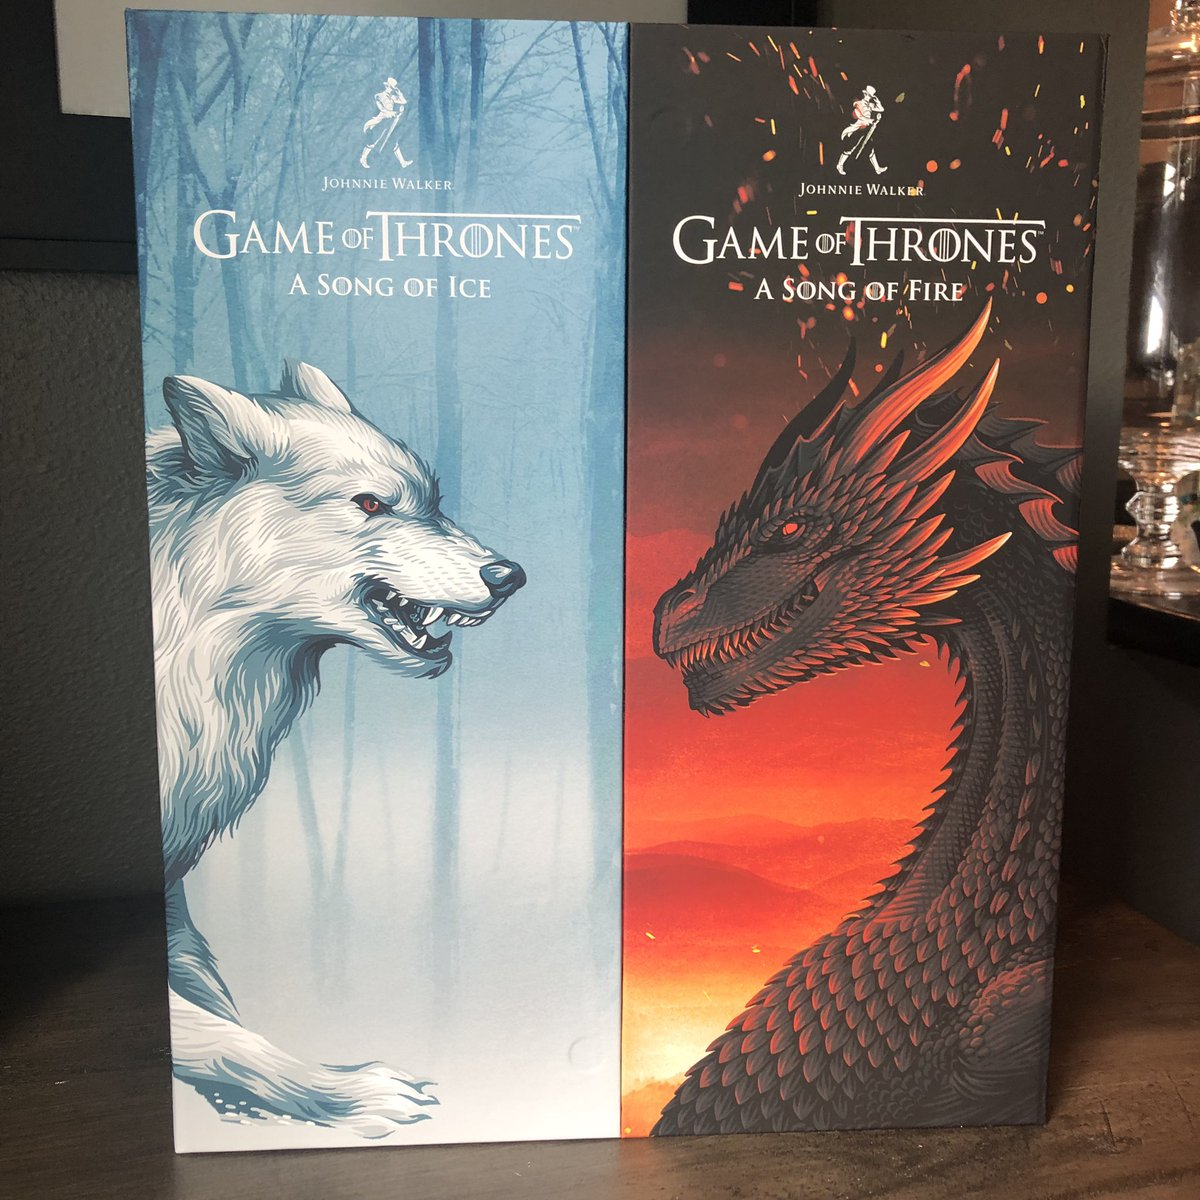 #Winteriscoming to the Northwest this weekend. Good time to tuck into new #GameOfThornes themed releases from @JohnnieWalkerUS #WinterStorm #jwsongofice #jwsongoffire<br>http://pic.twitter.com/4iMUxzTwVd